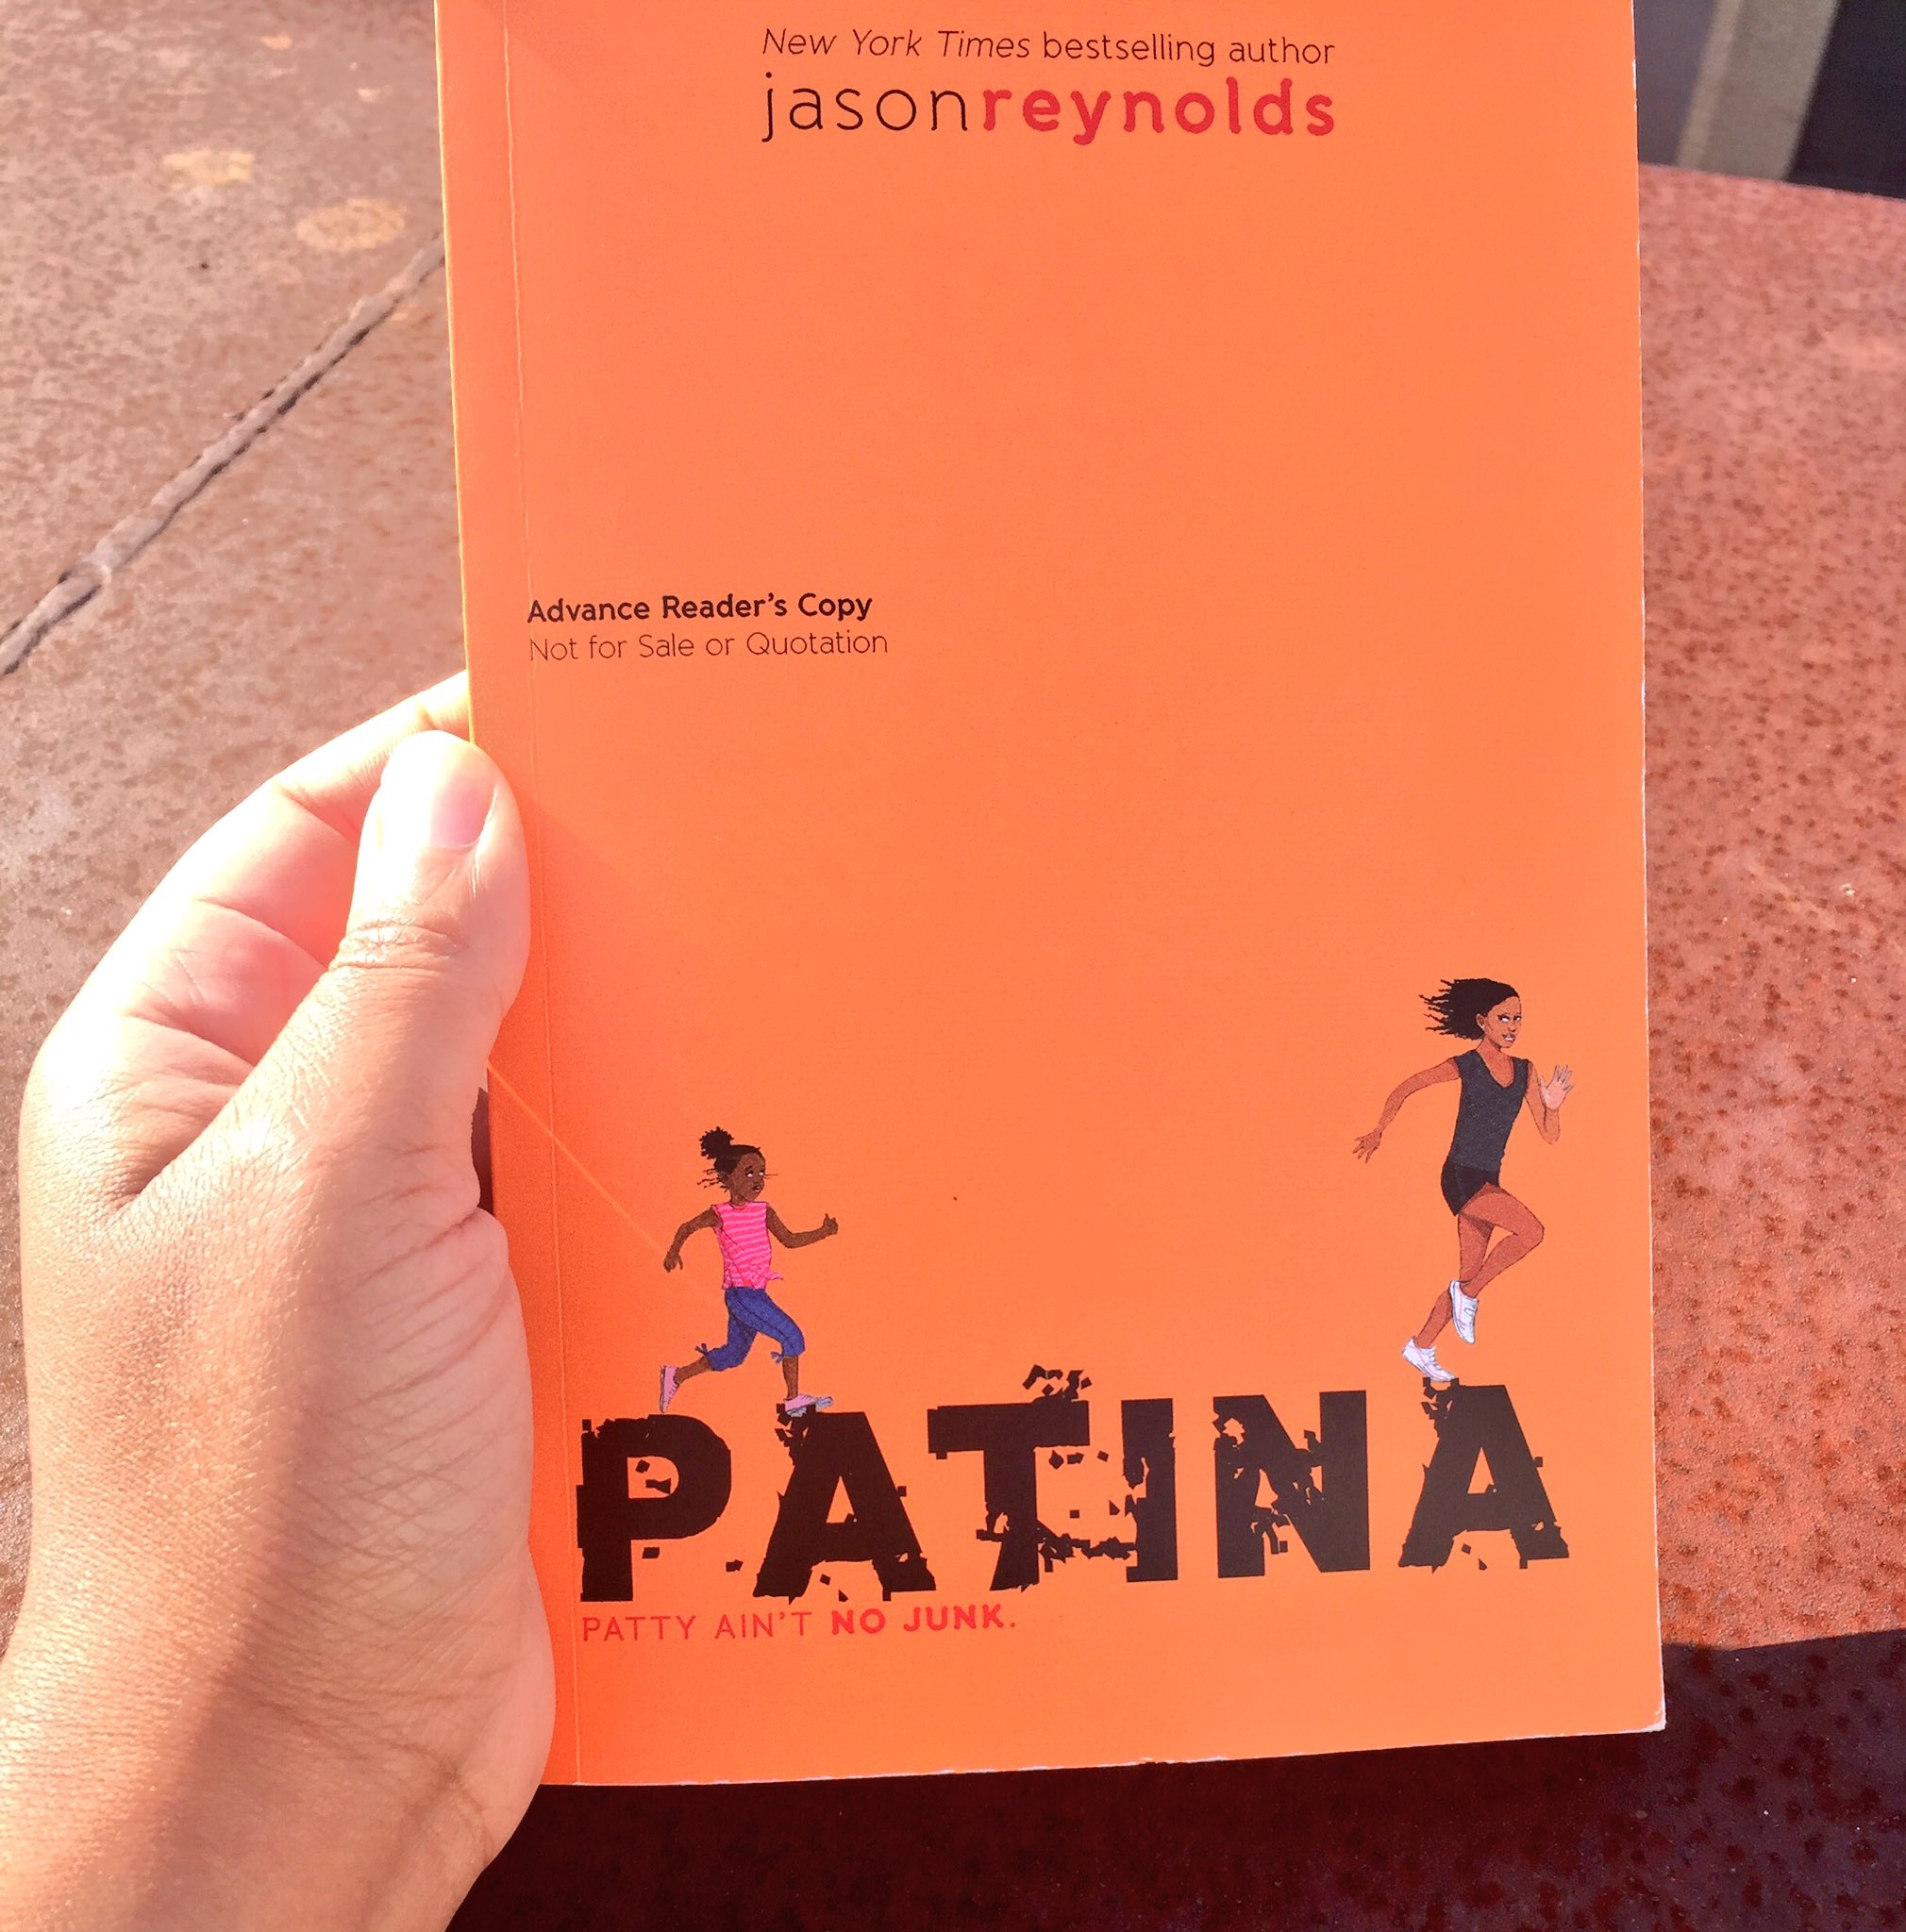 After hearing @JasonReynolds83 speak at the #ReadingMatters conference 🙌🏾 we can't wait to read his new book PATINA! https://t.co/89euhG7l1T